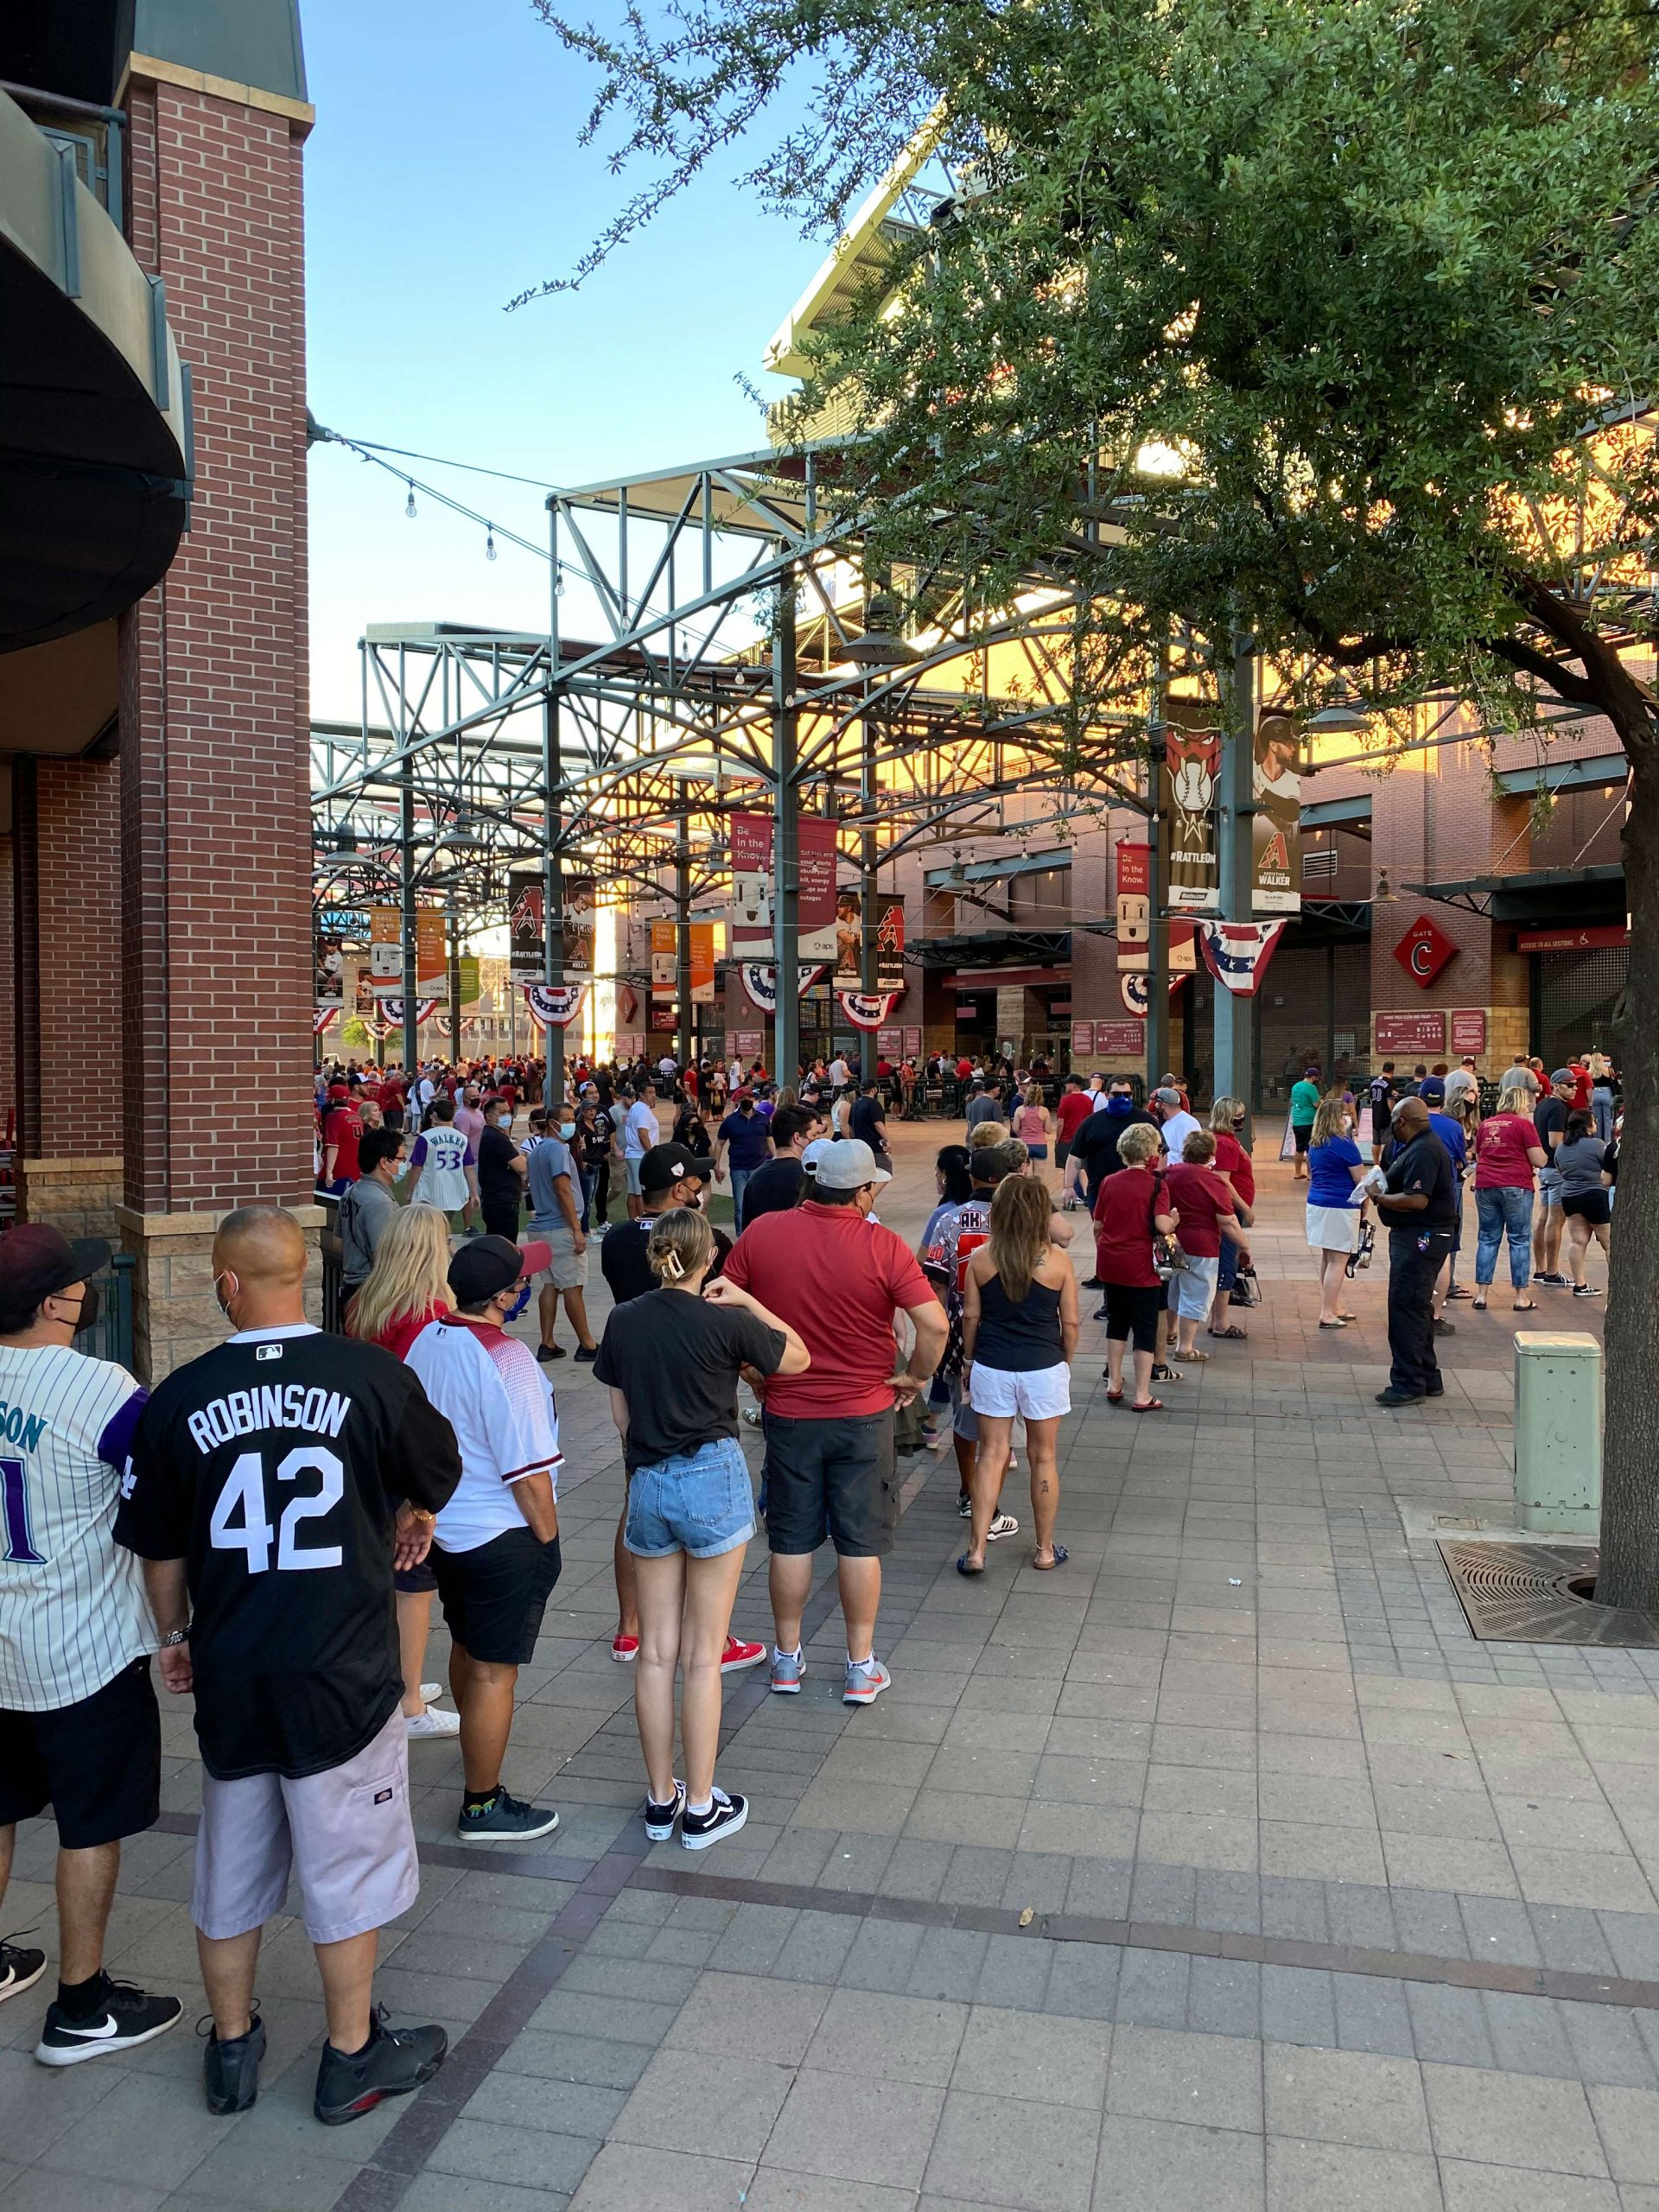 Fans wait in long lines to get inside Chase Field for Opening Day 2021. Photo by Matthew Johnson/PHOENIX magazine